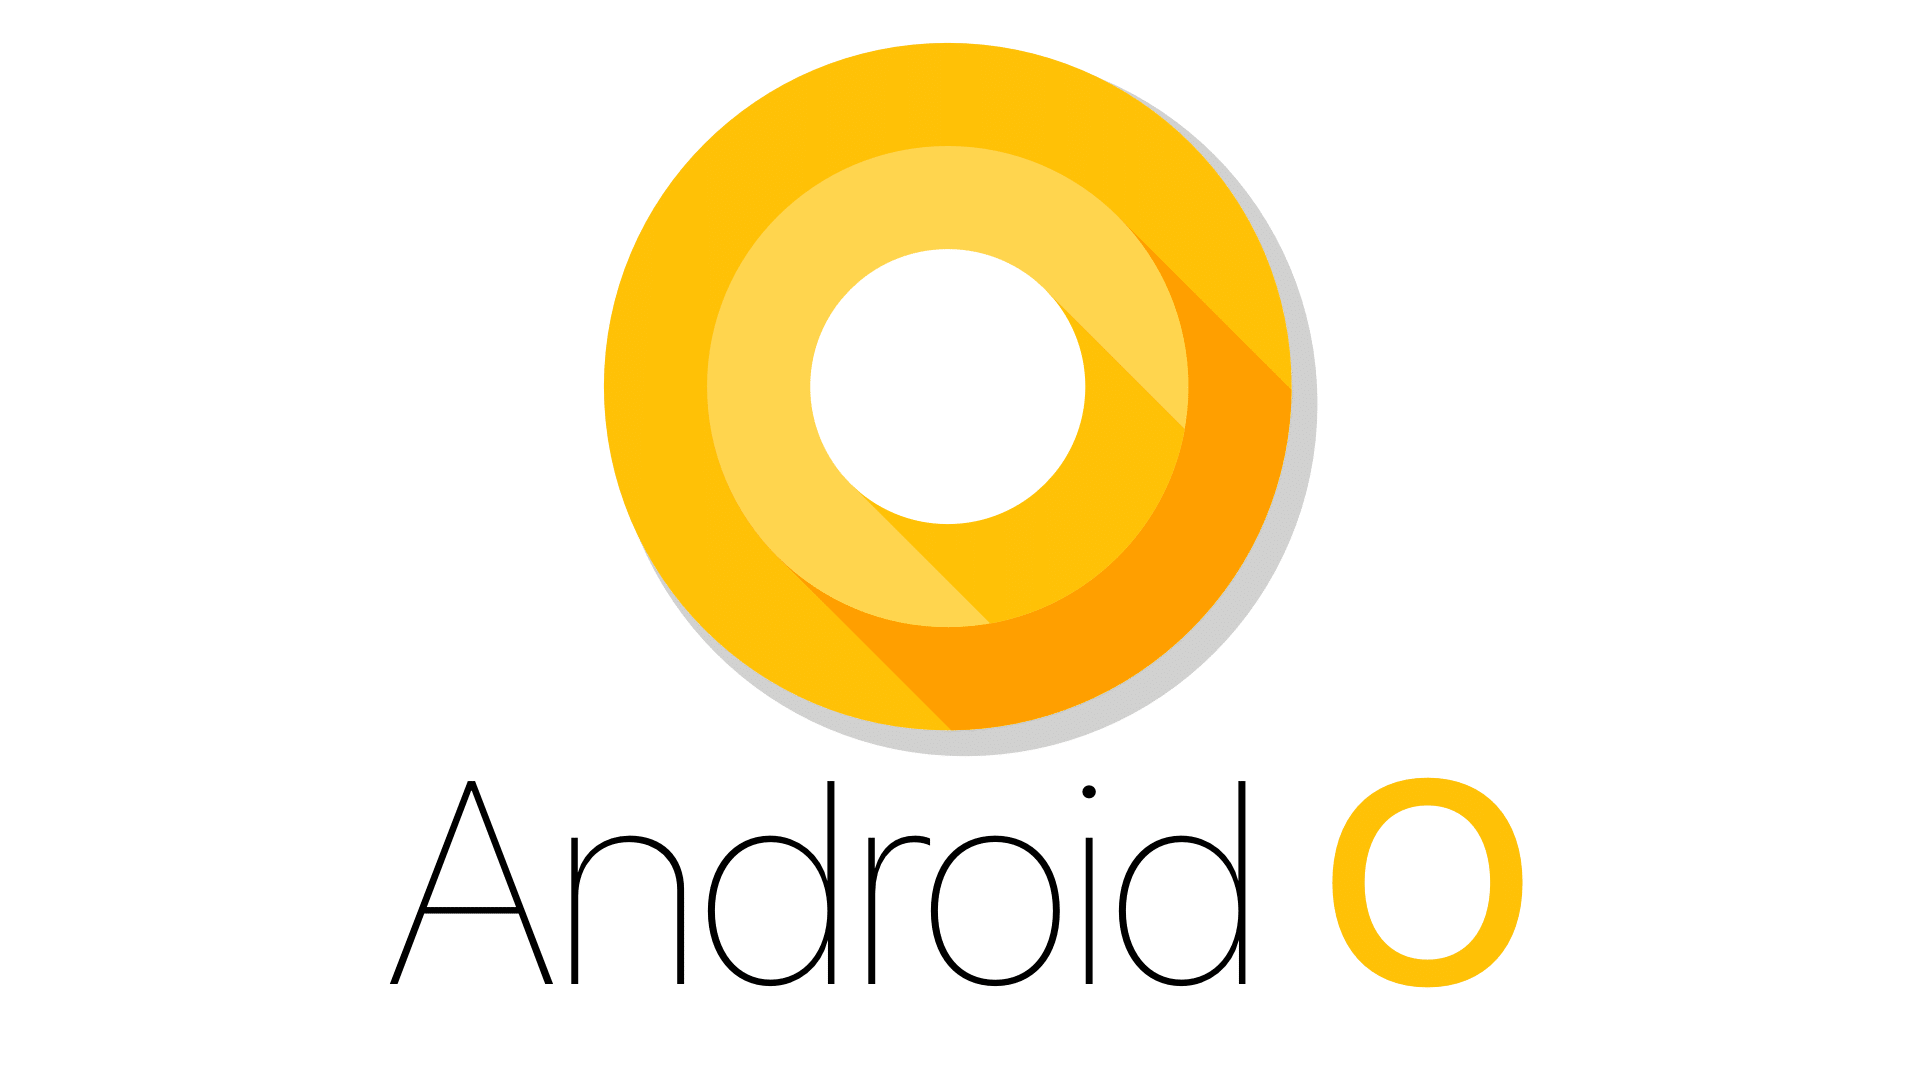 Beta-version of Android O is available